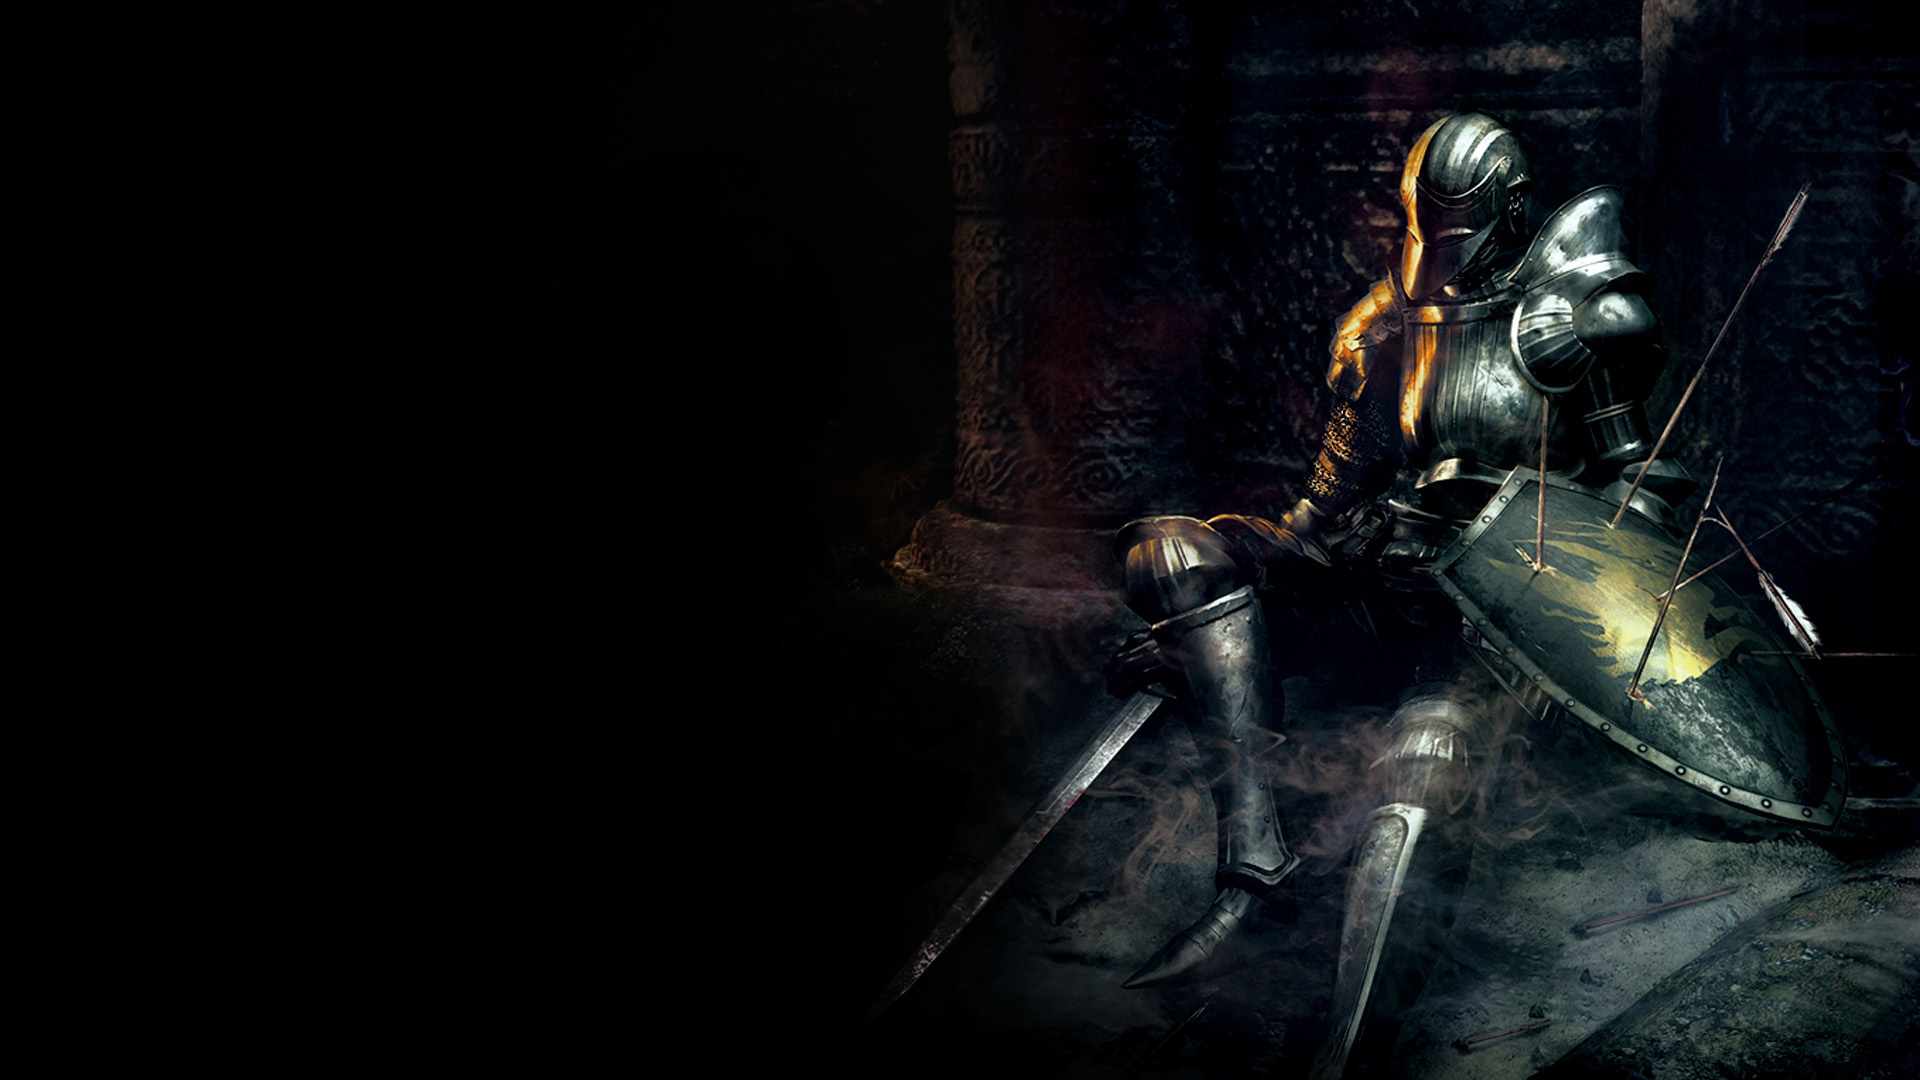 Dark Souls 19201080 wallpaper 3 1920x1080